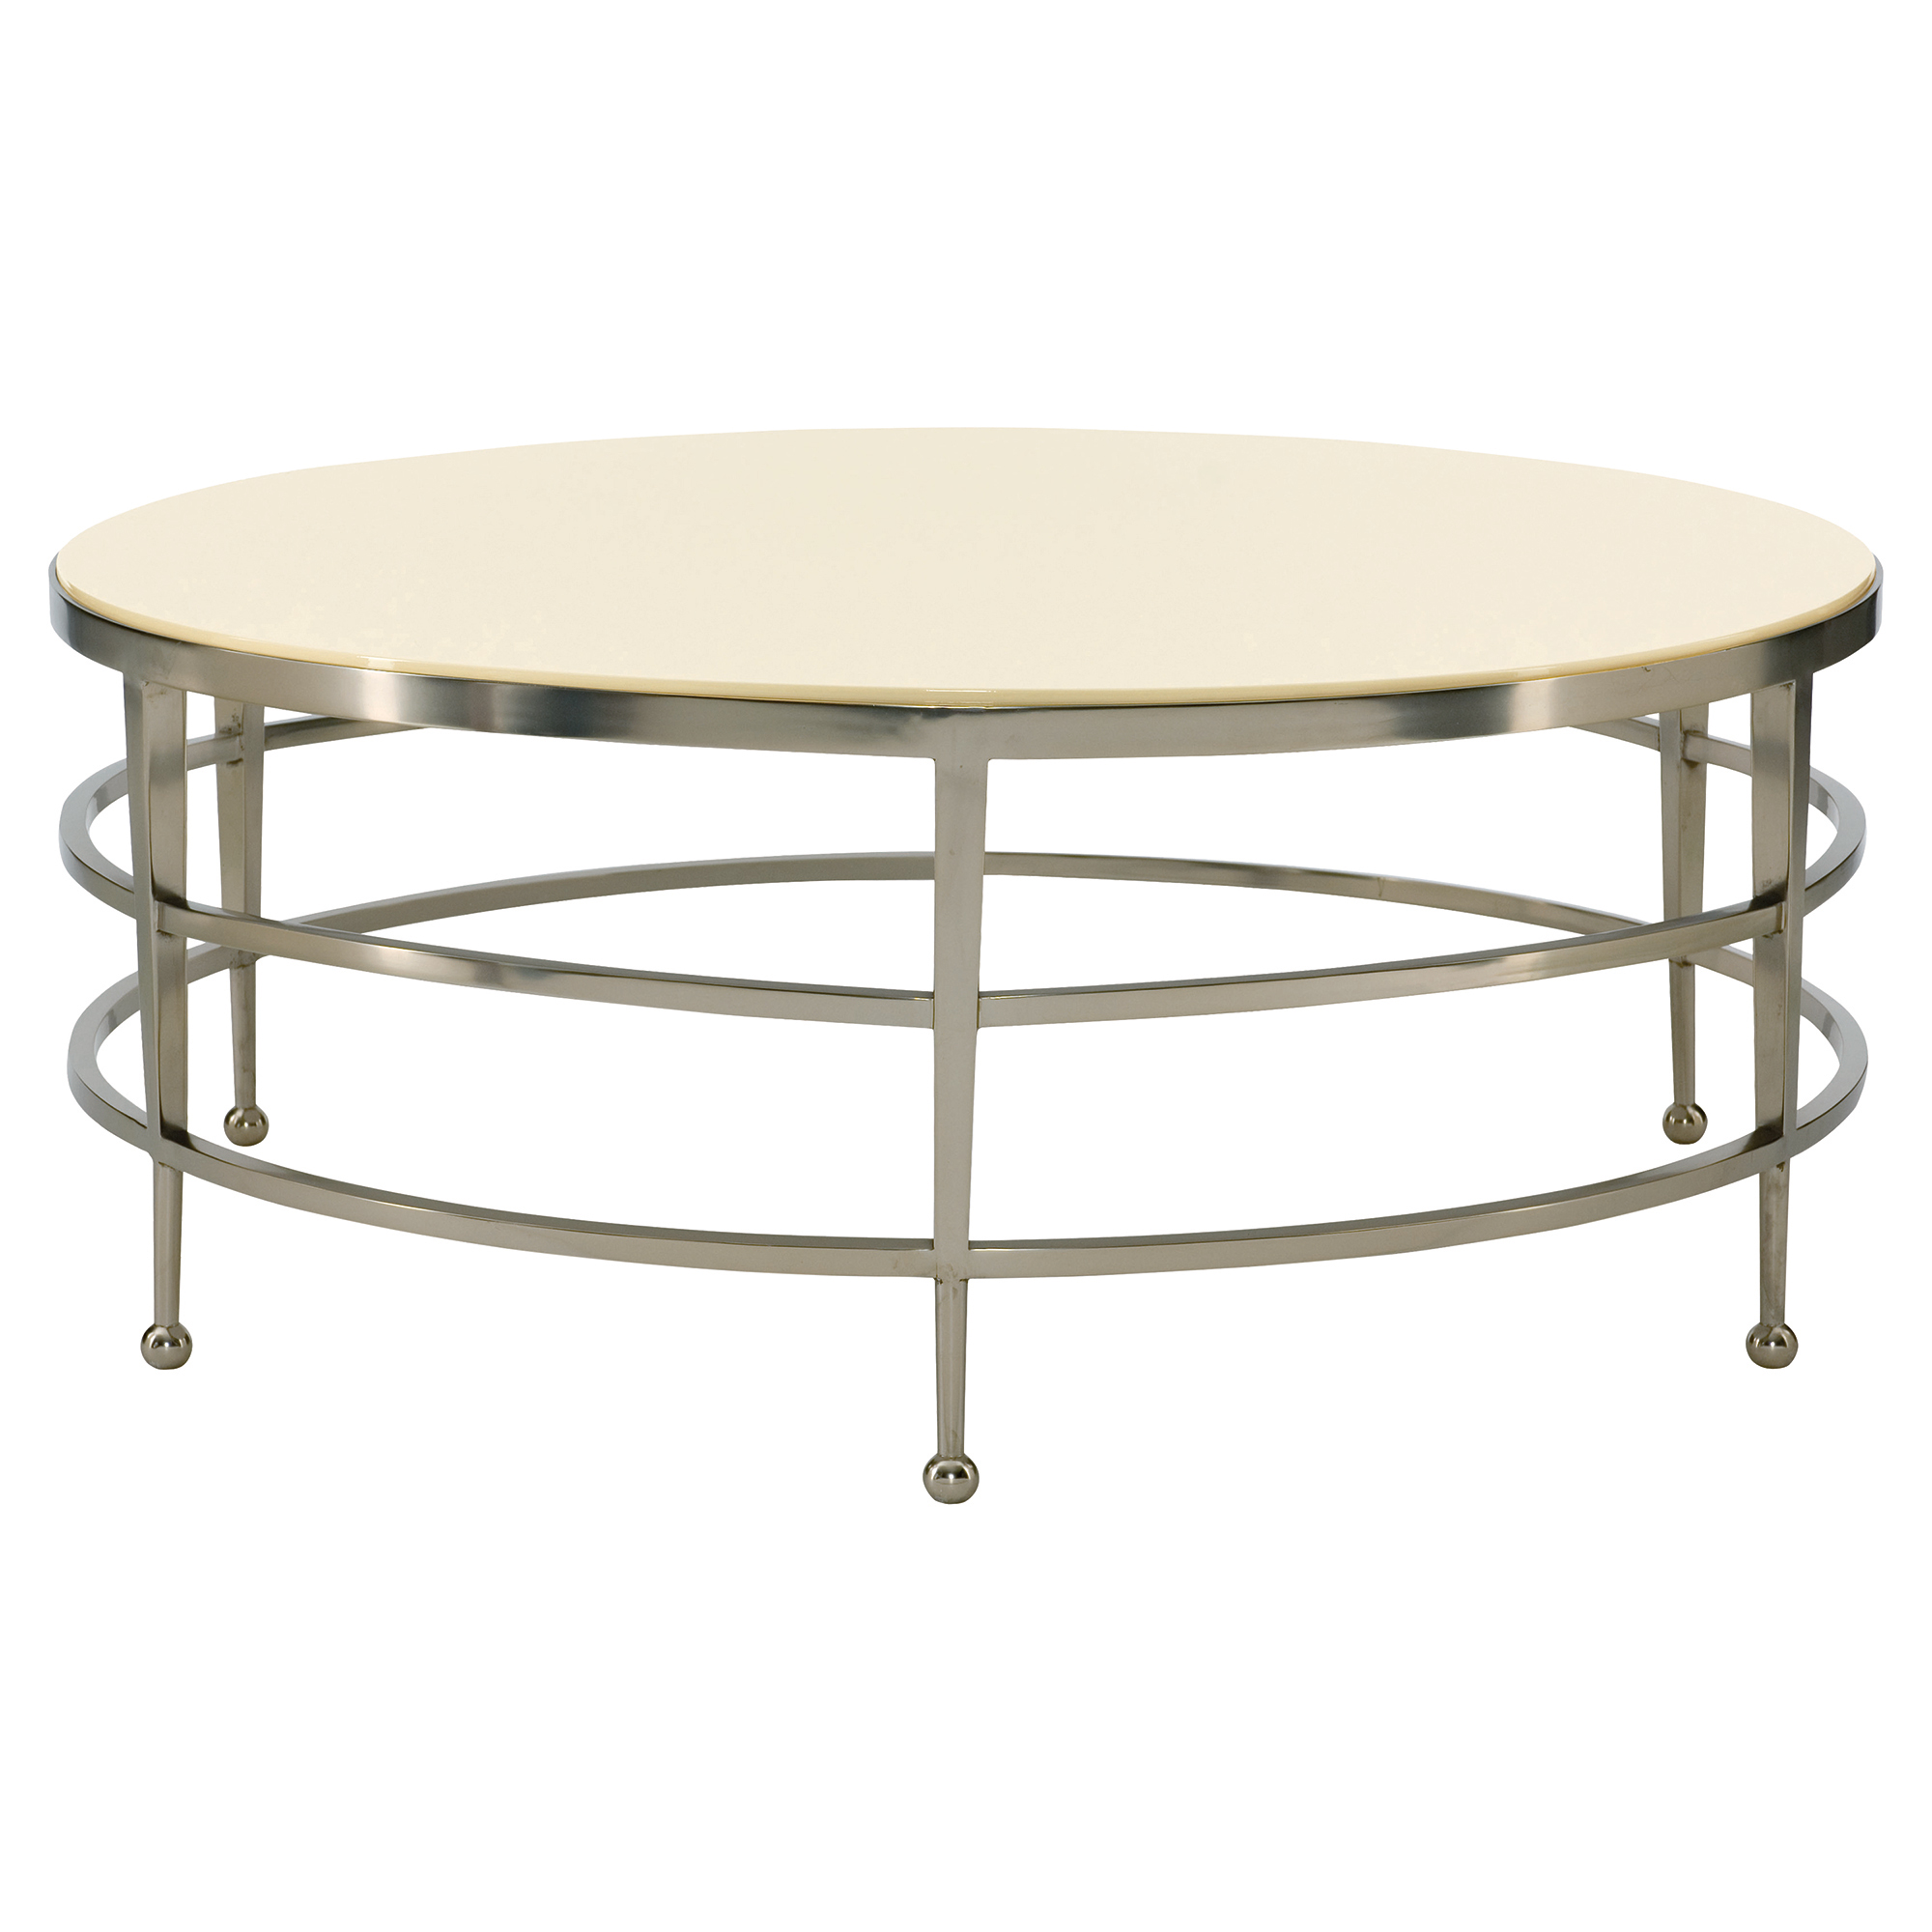 Stark Modern Classic Round Cream Nickel Coffee Table